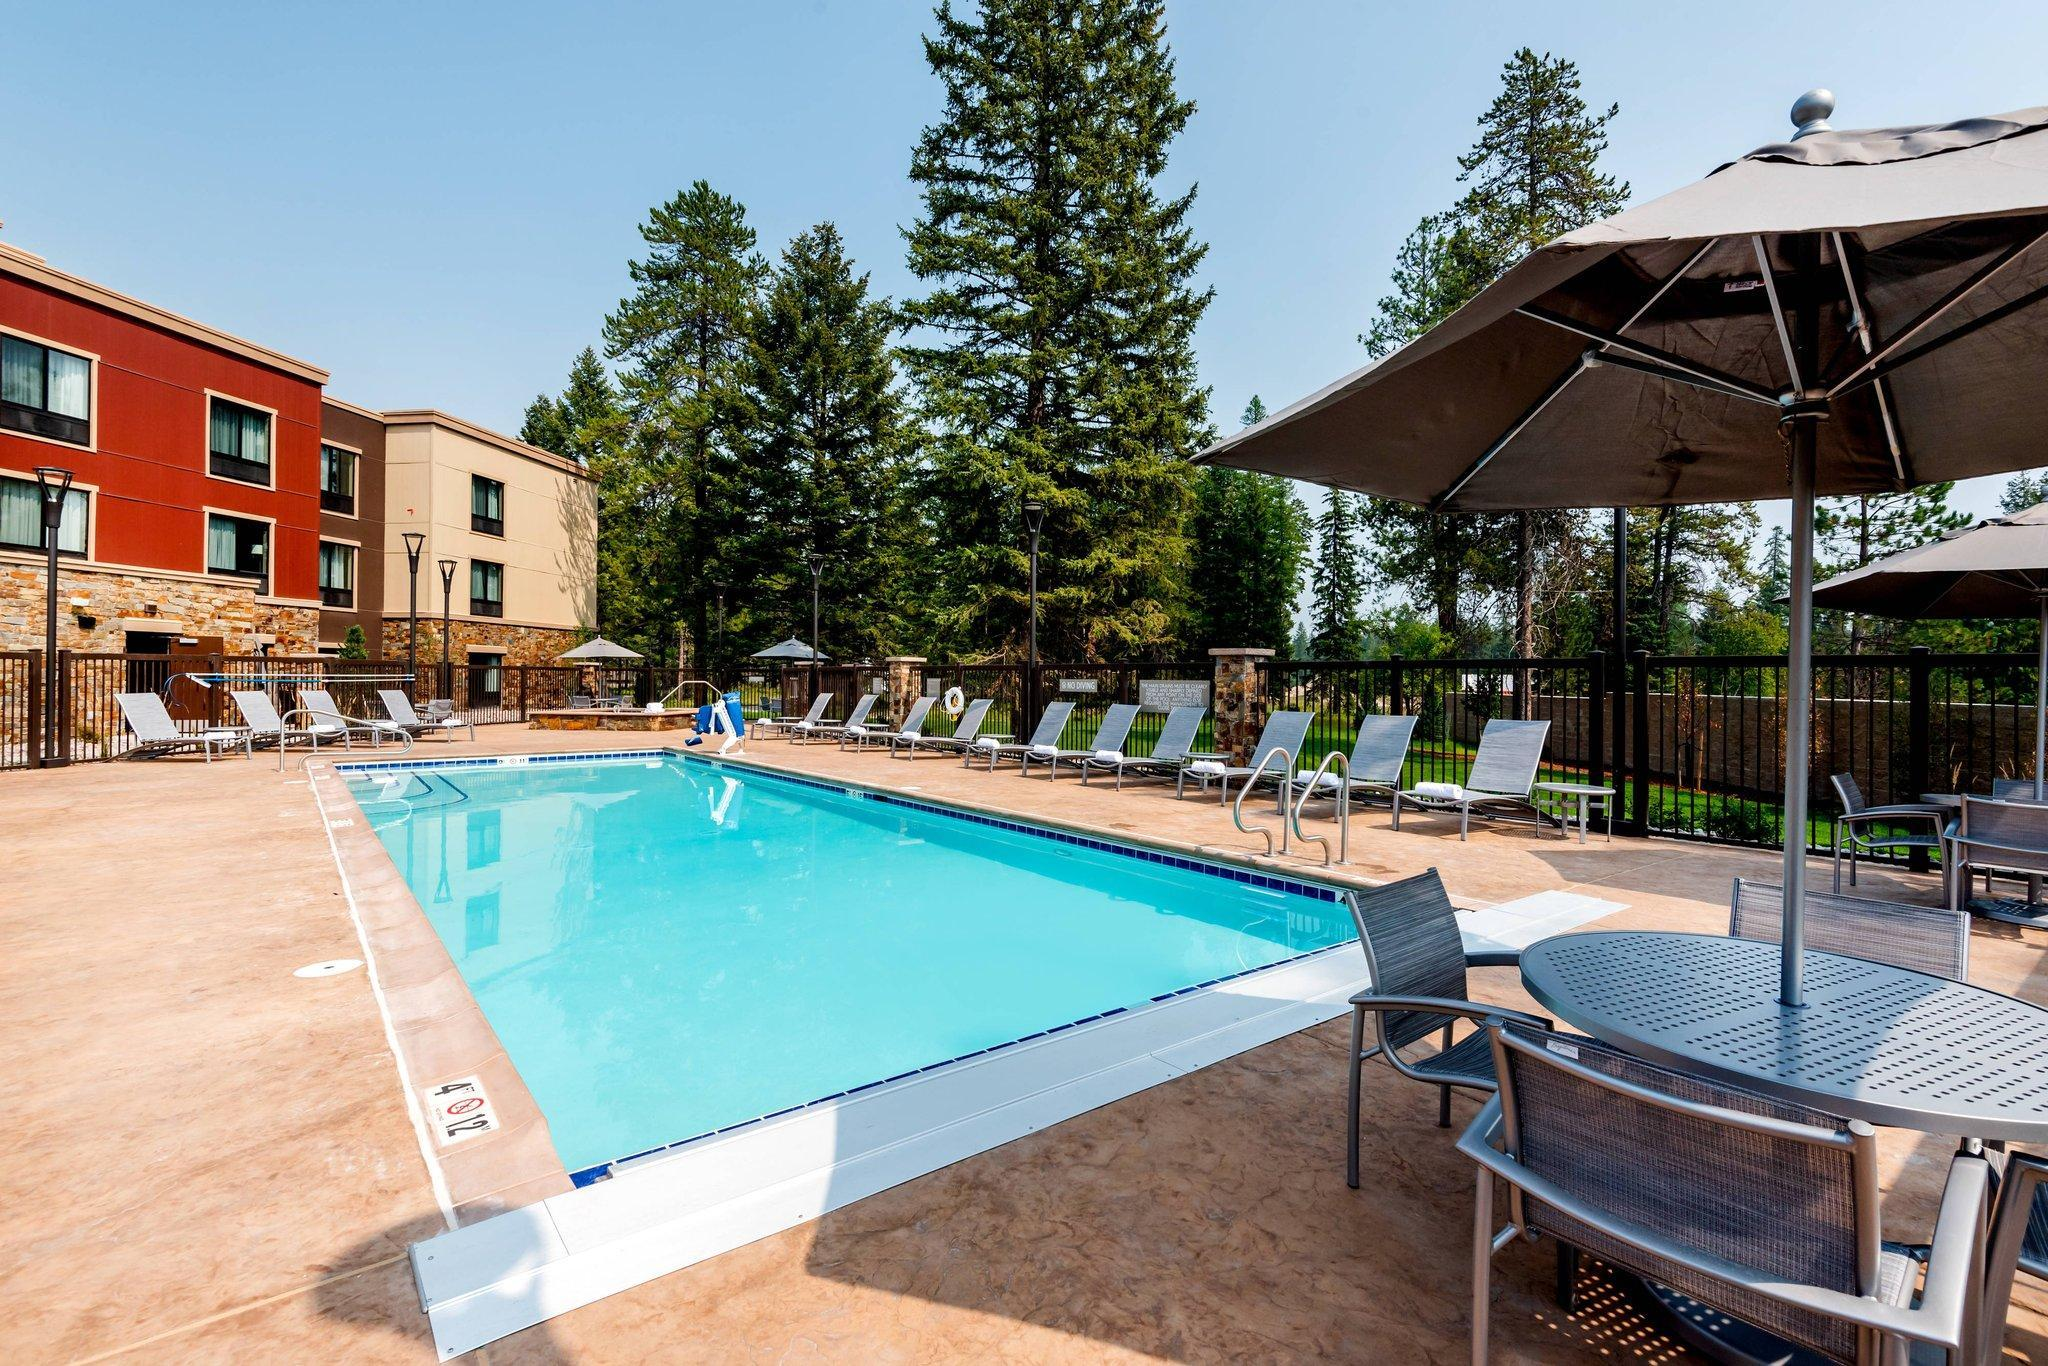 TownePlace Suites Whitefish, Flathead